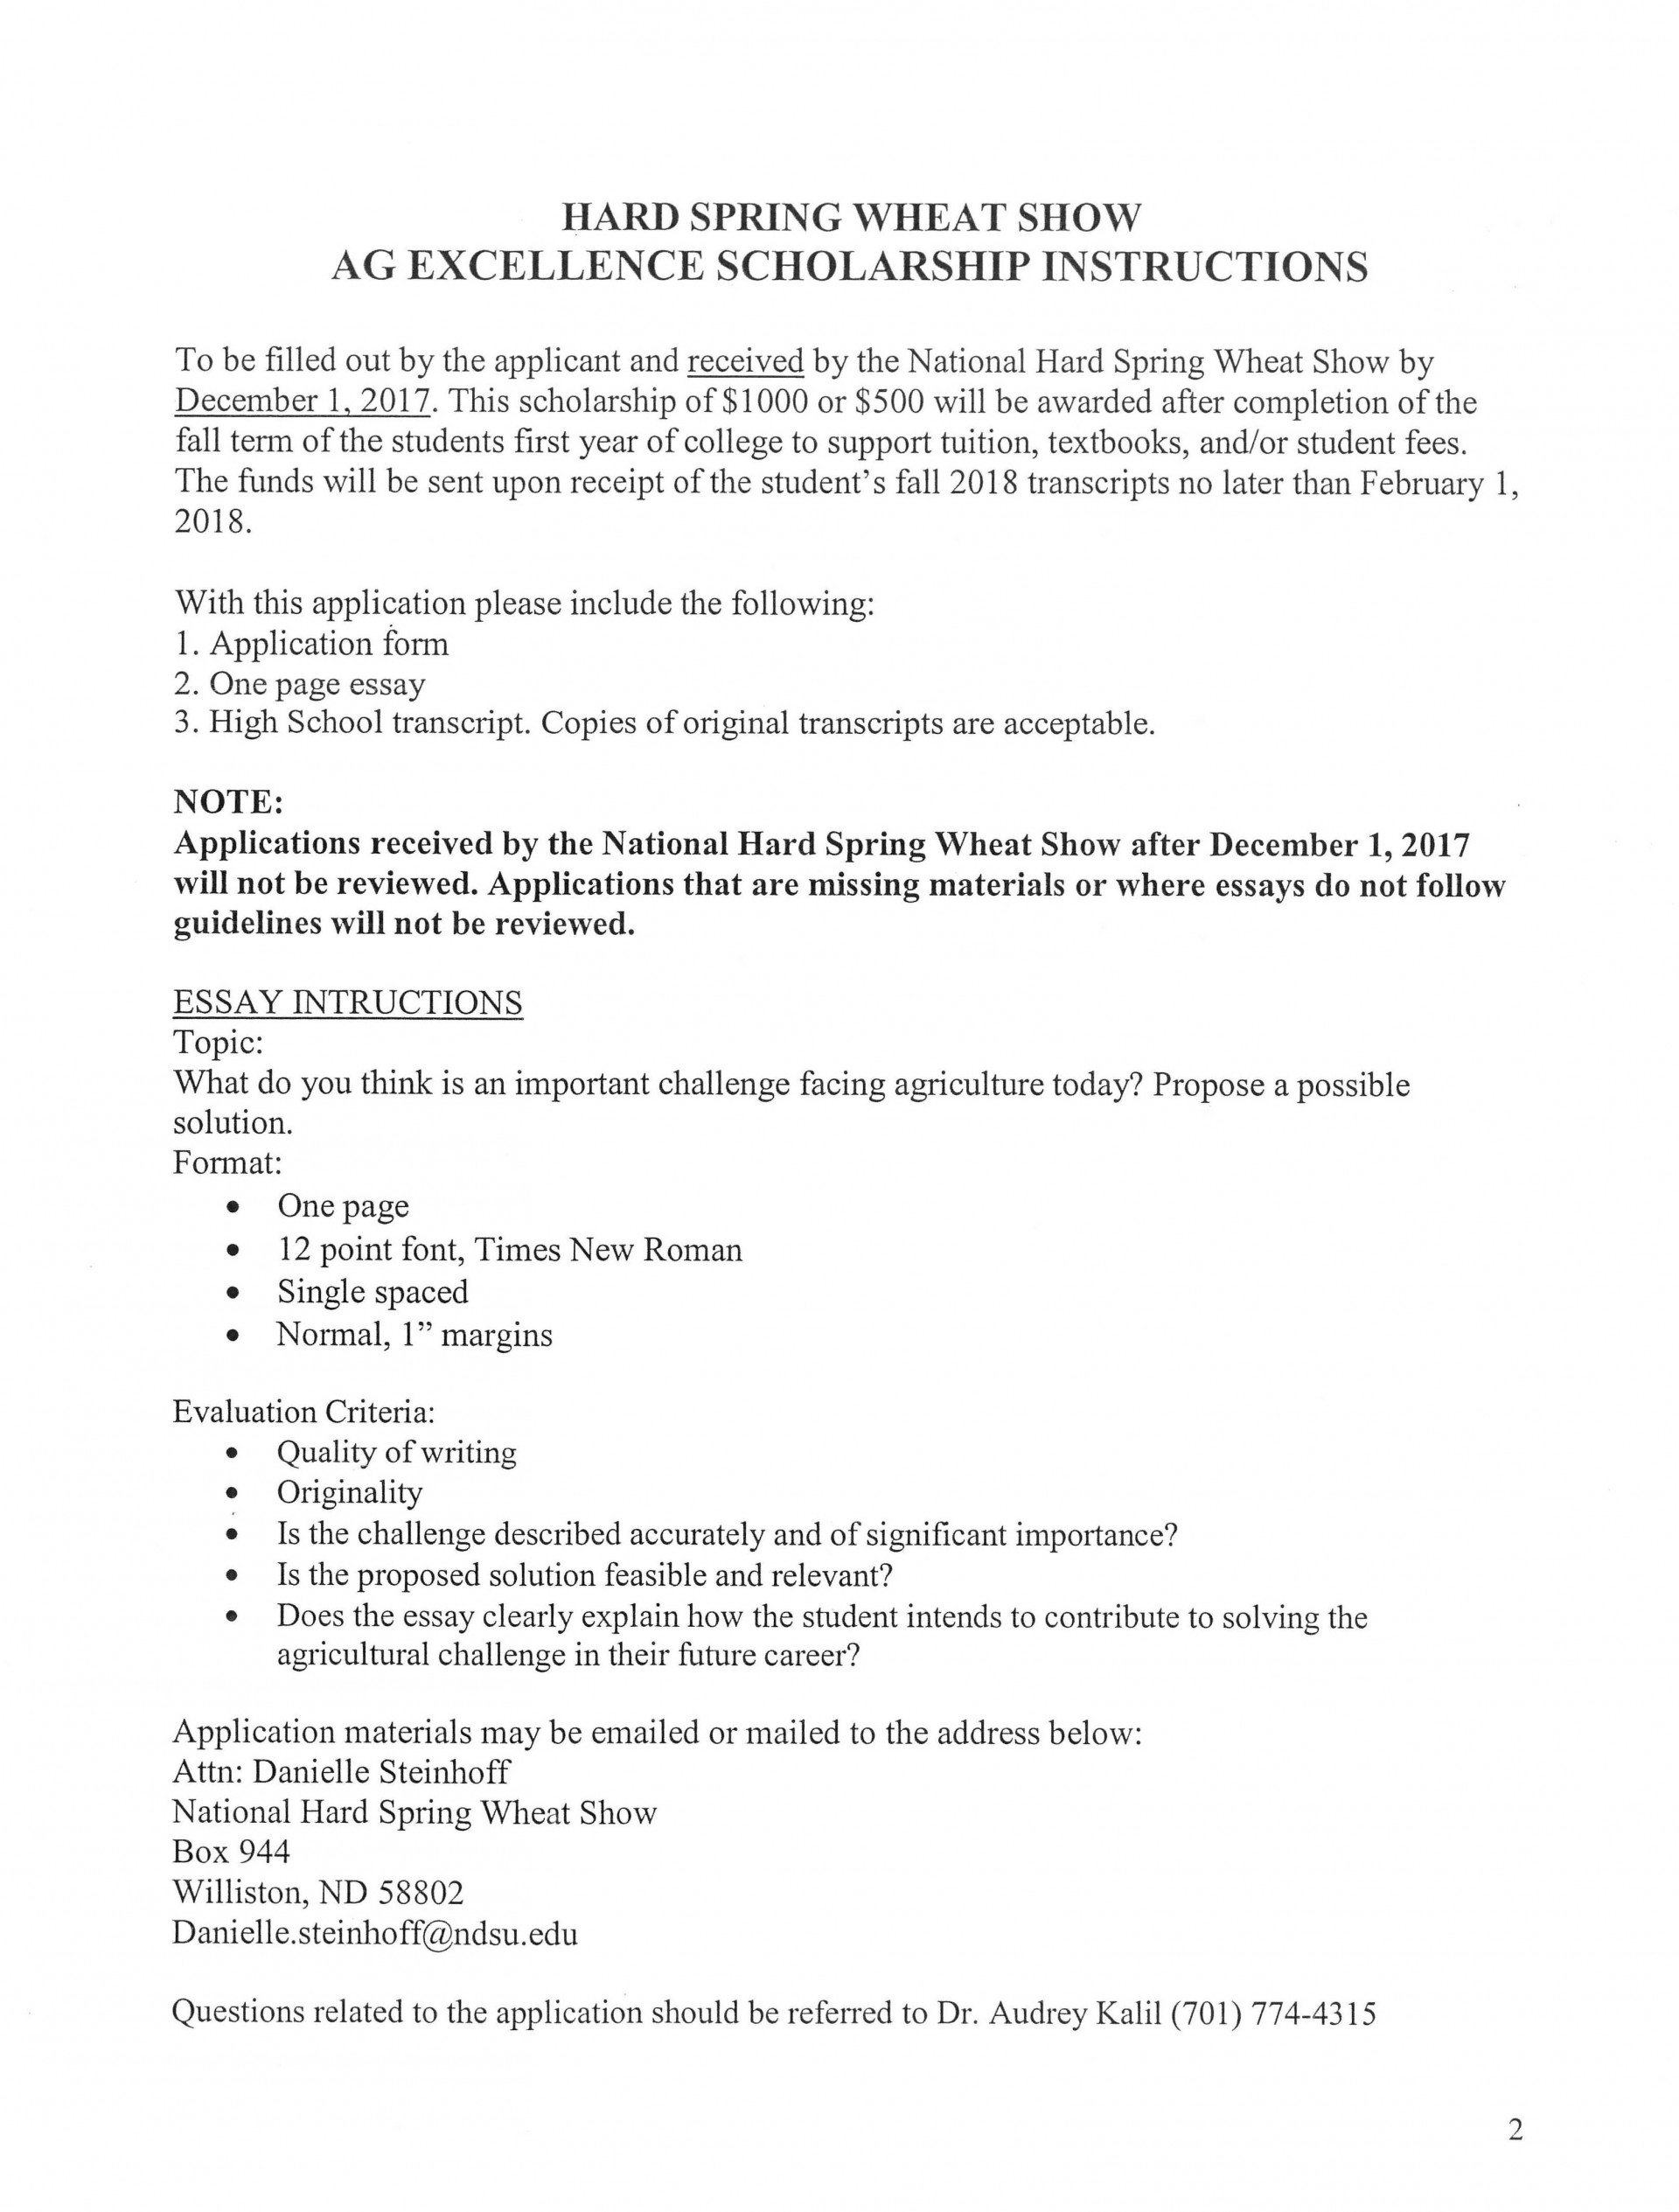 013 Scholarships Without Essays Essay Example Page 2 Stunning Requirements No Required In Texas 1920